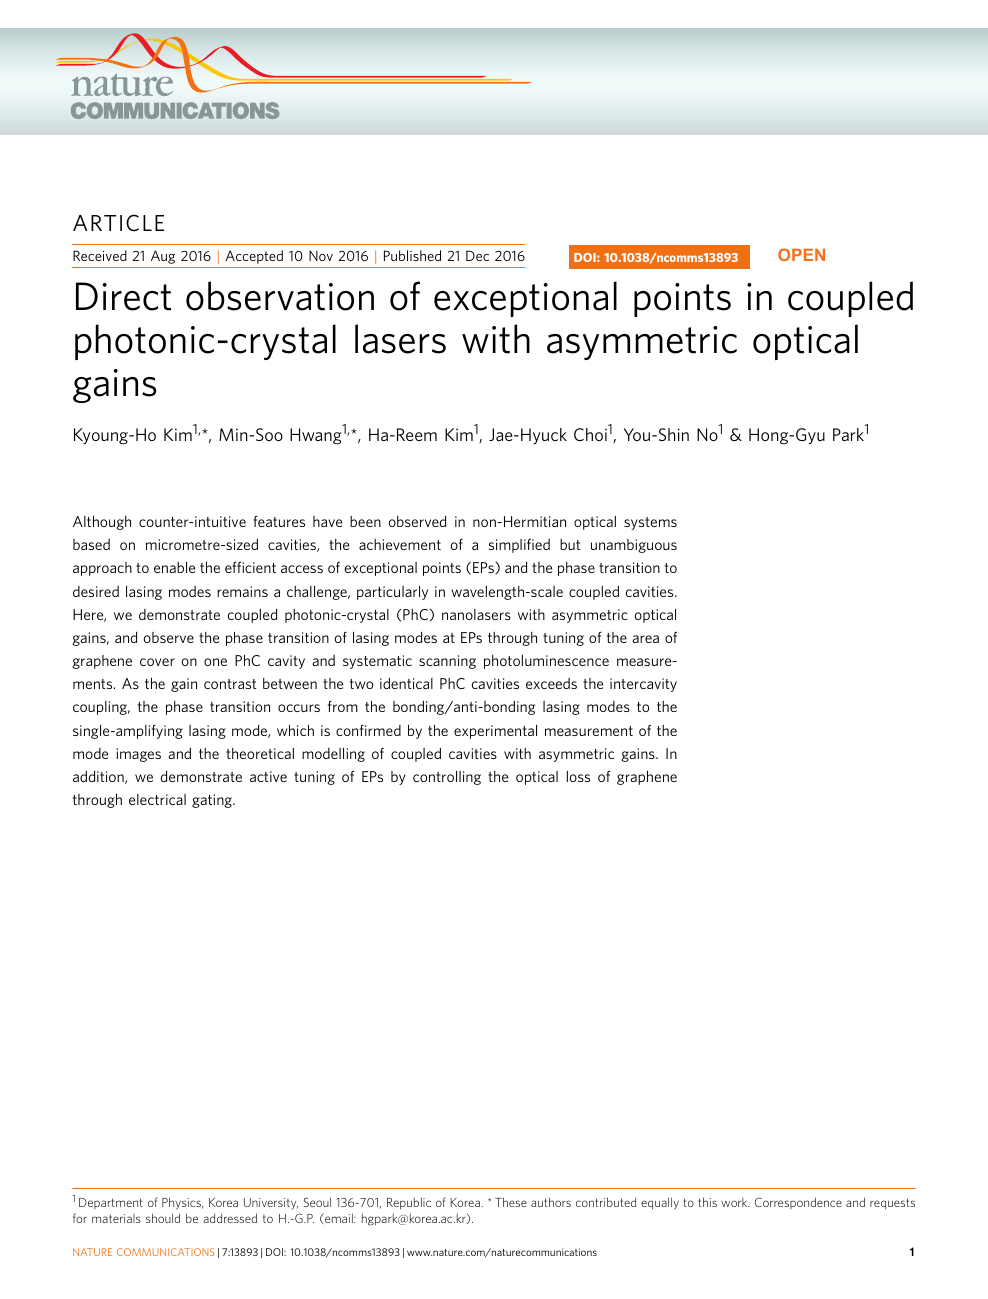 Direct observation of exceptional points in coupled photonic